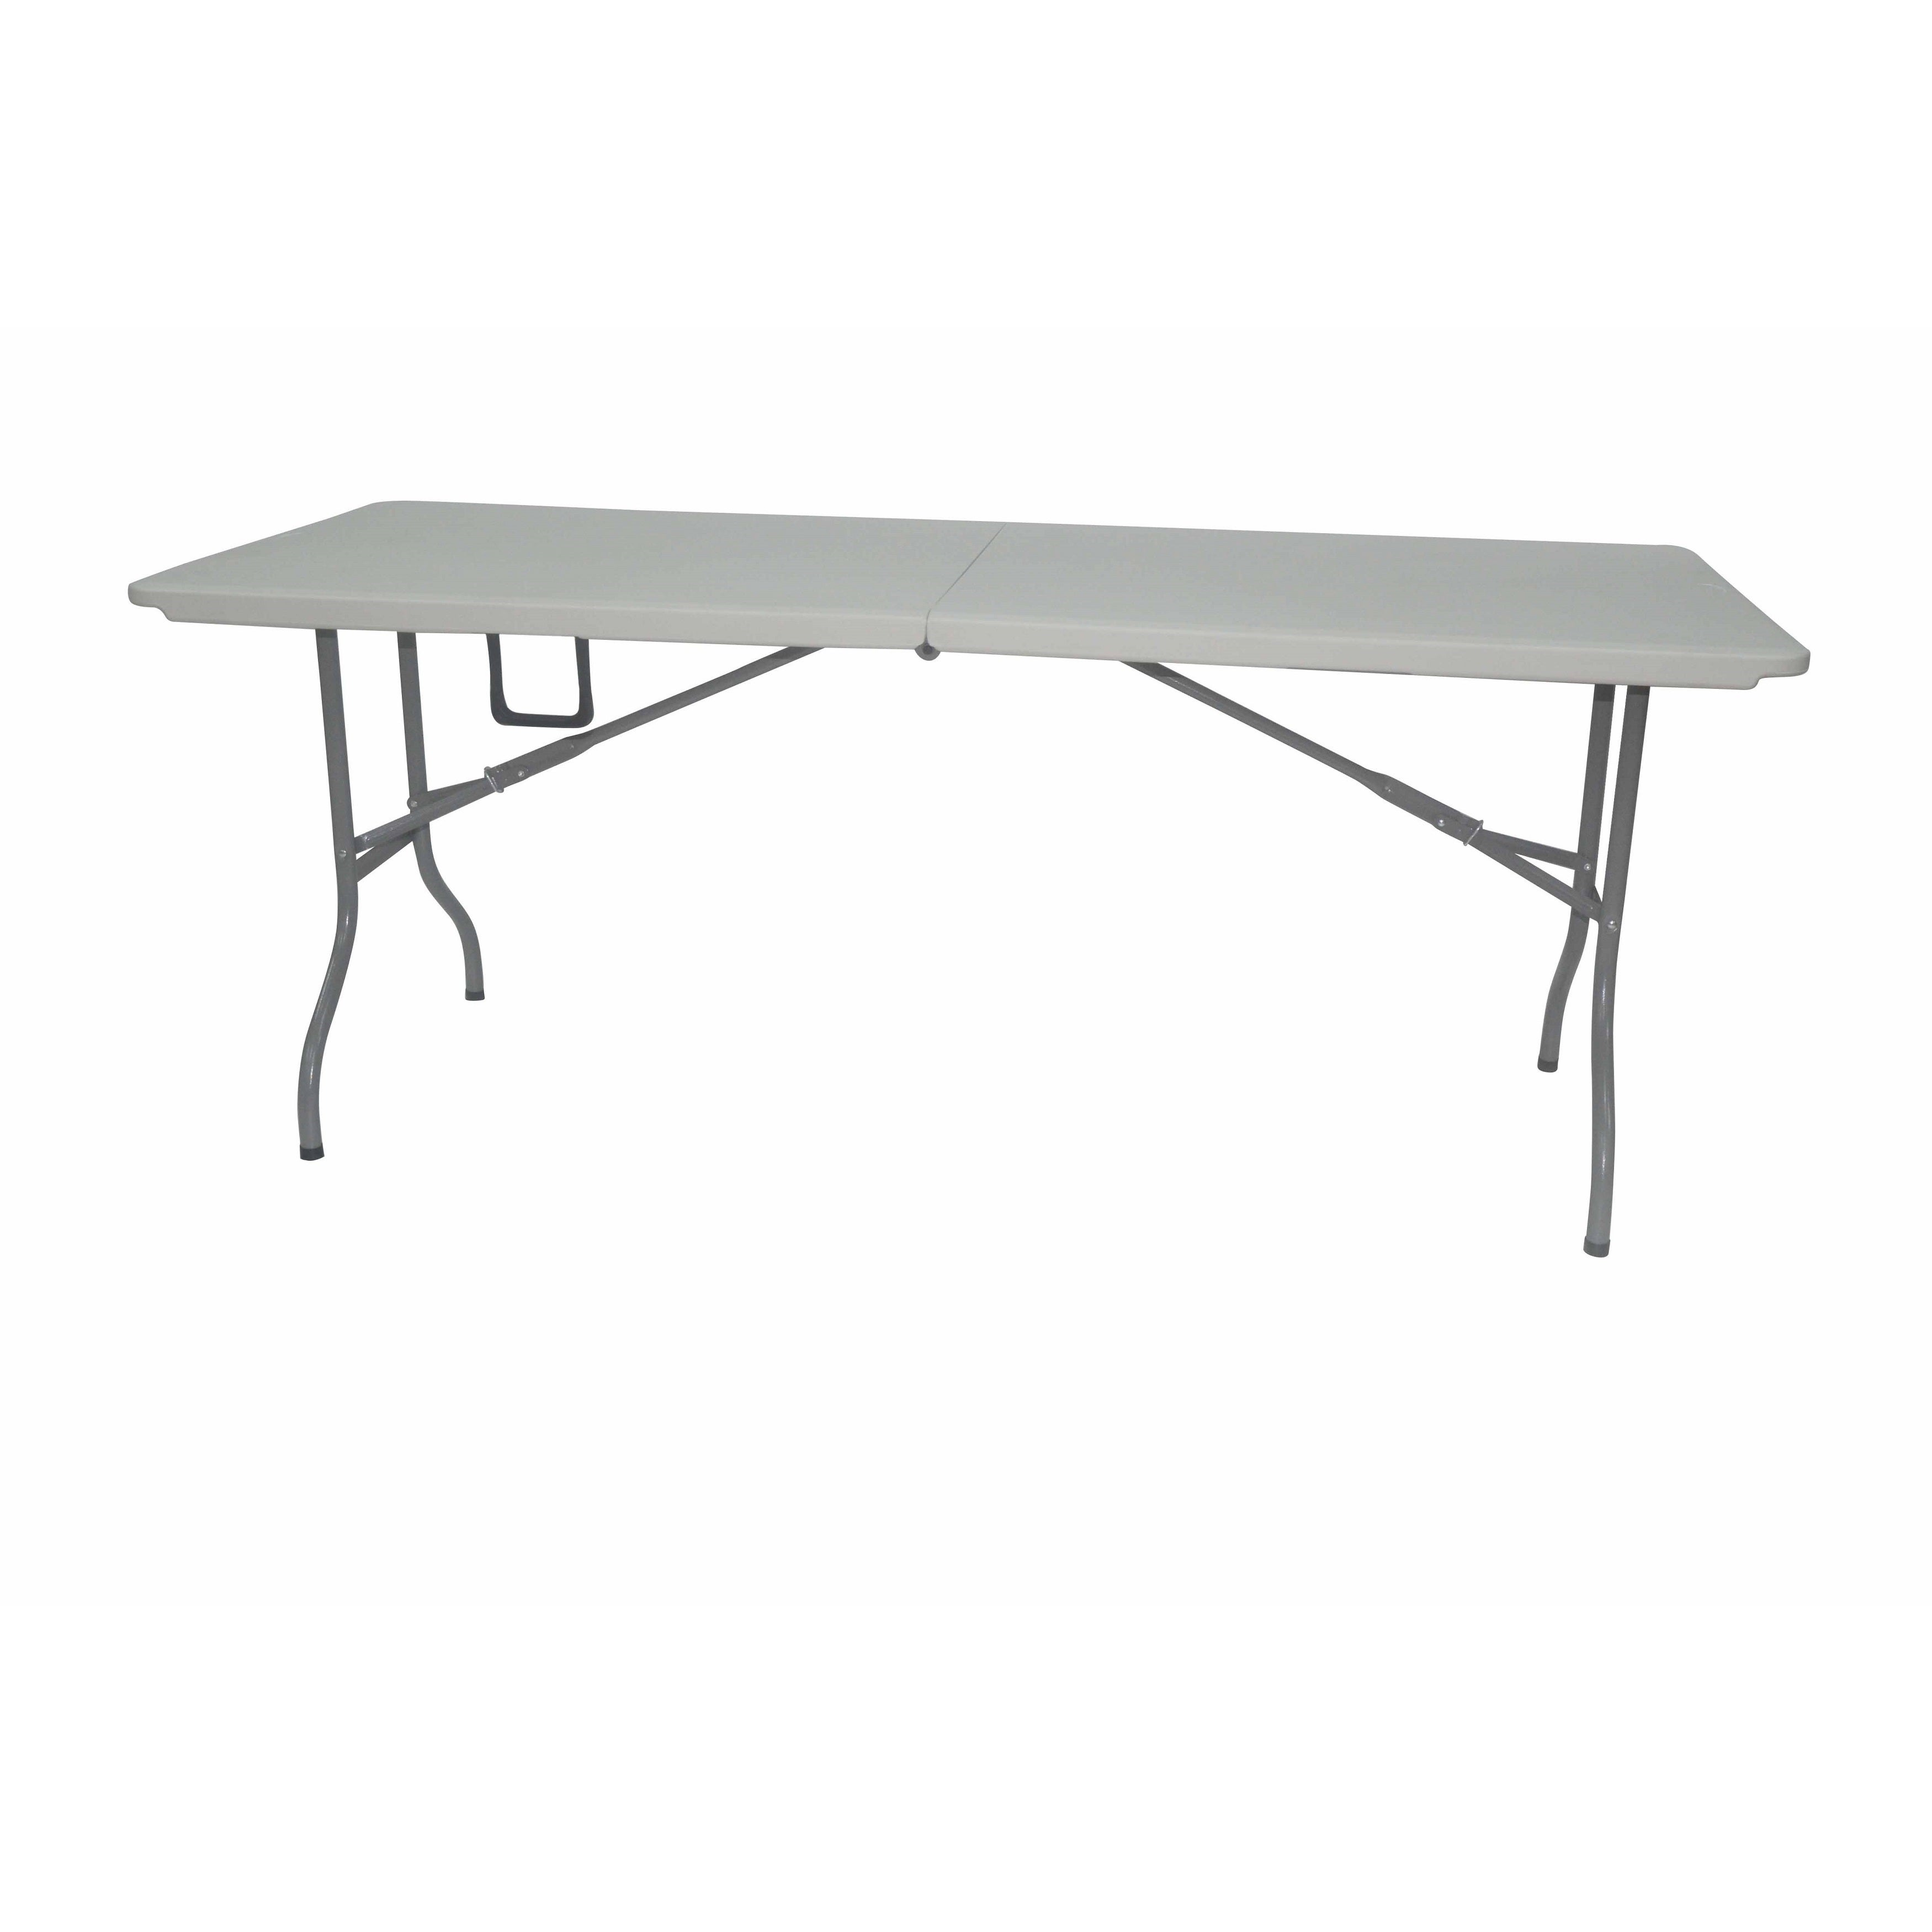 Shop 6 Foot Fold In Half White Plastic Table Overstock 12432930